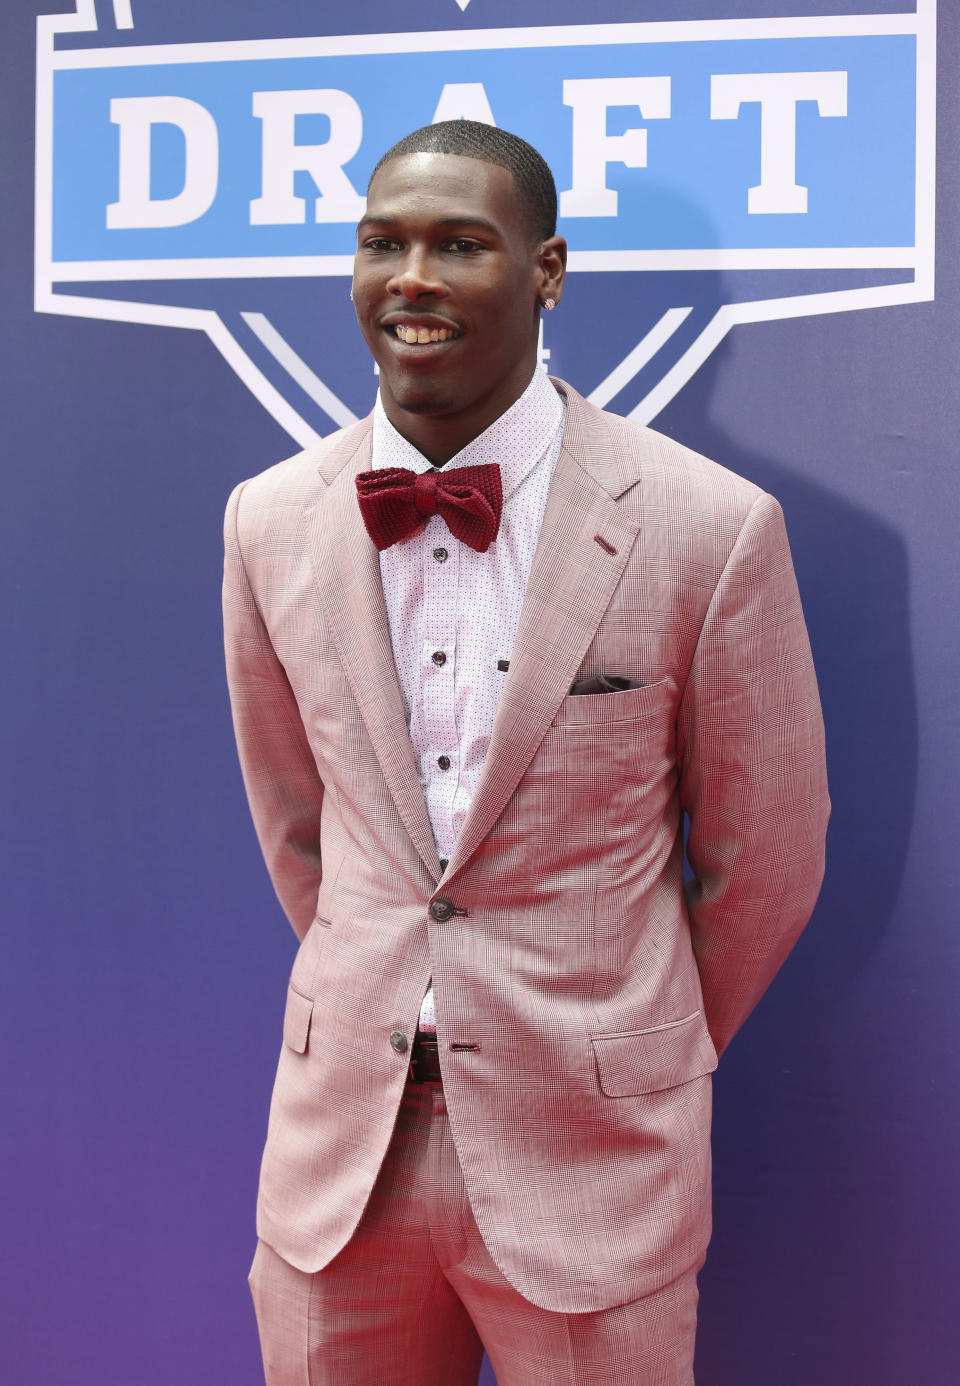 USC wide receiver Marquis Lee poses for photos on the red carpet for the first round of the 2014 NFL Draft, Thursday, May 8, 2014, in New York. (AP Photo/Craig Ruttle)